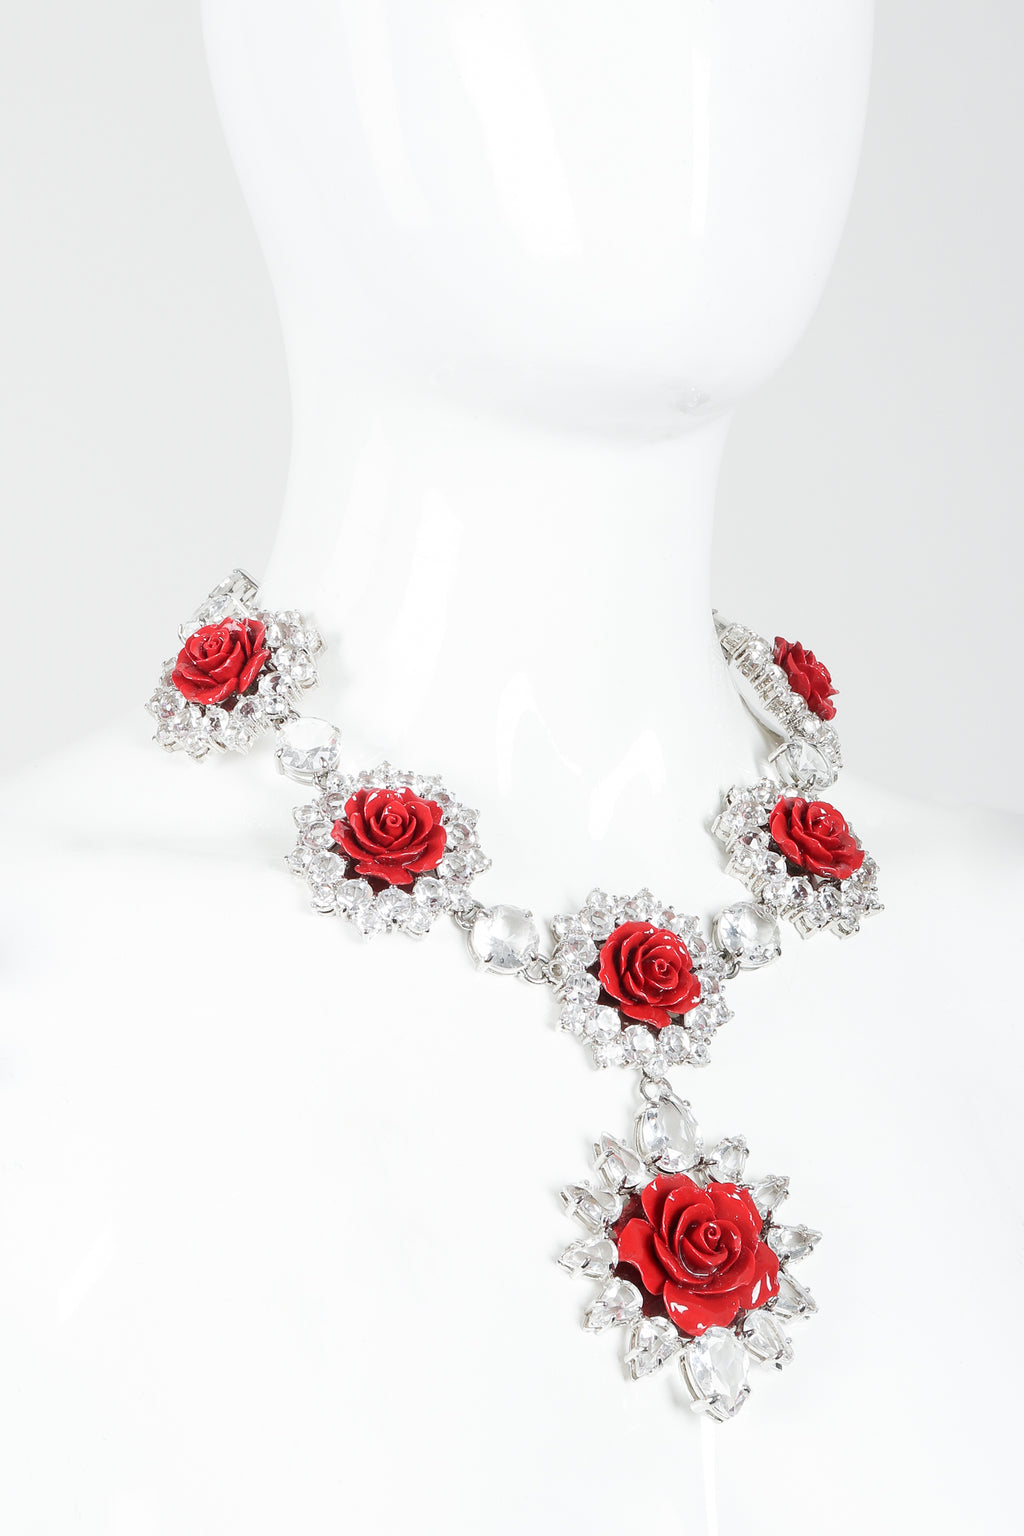 Vintage Prada Crystal Resin Rose Bib Necklace SS 2012 on mannequin at Recess